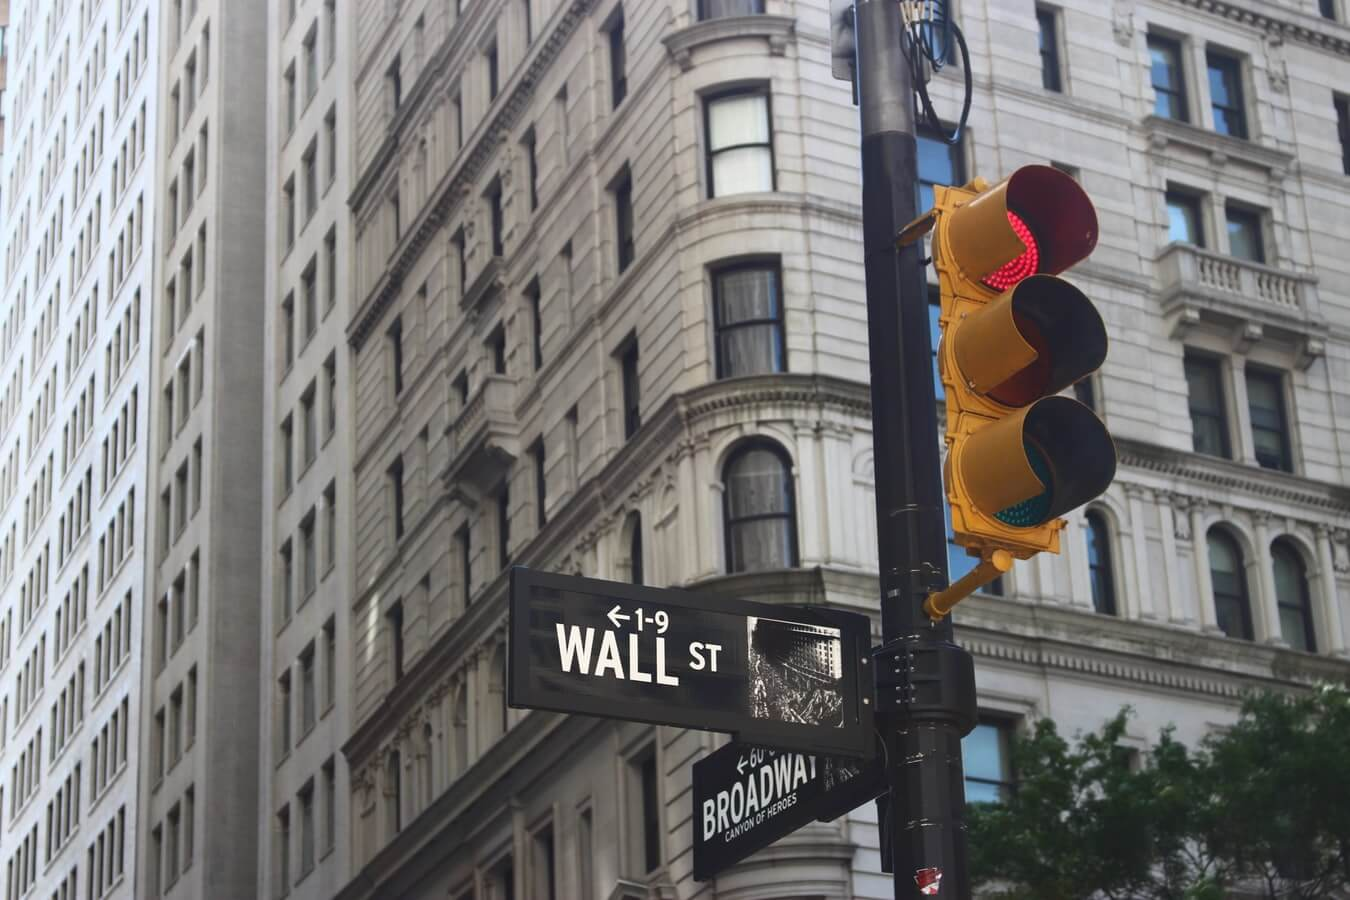 wall st broadway red light